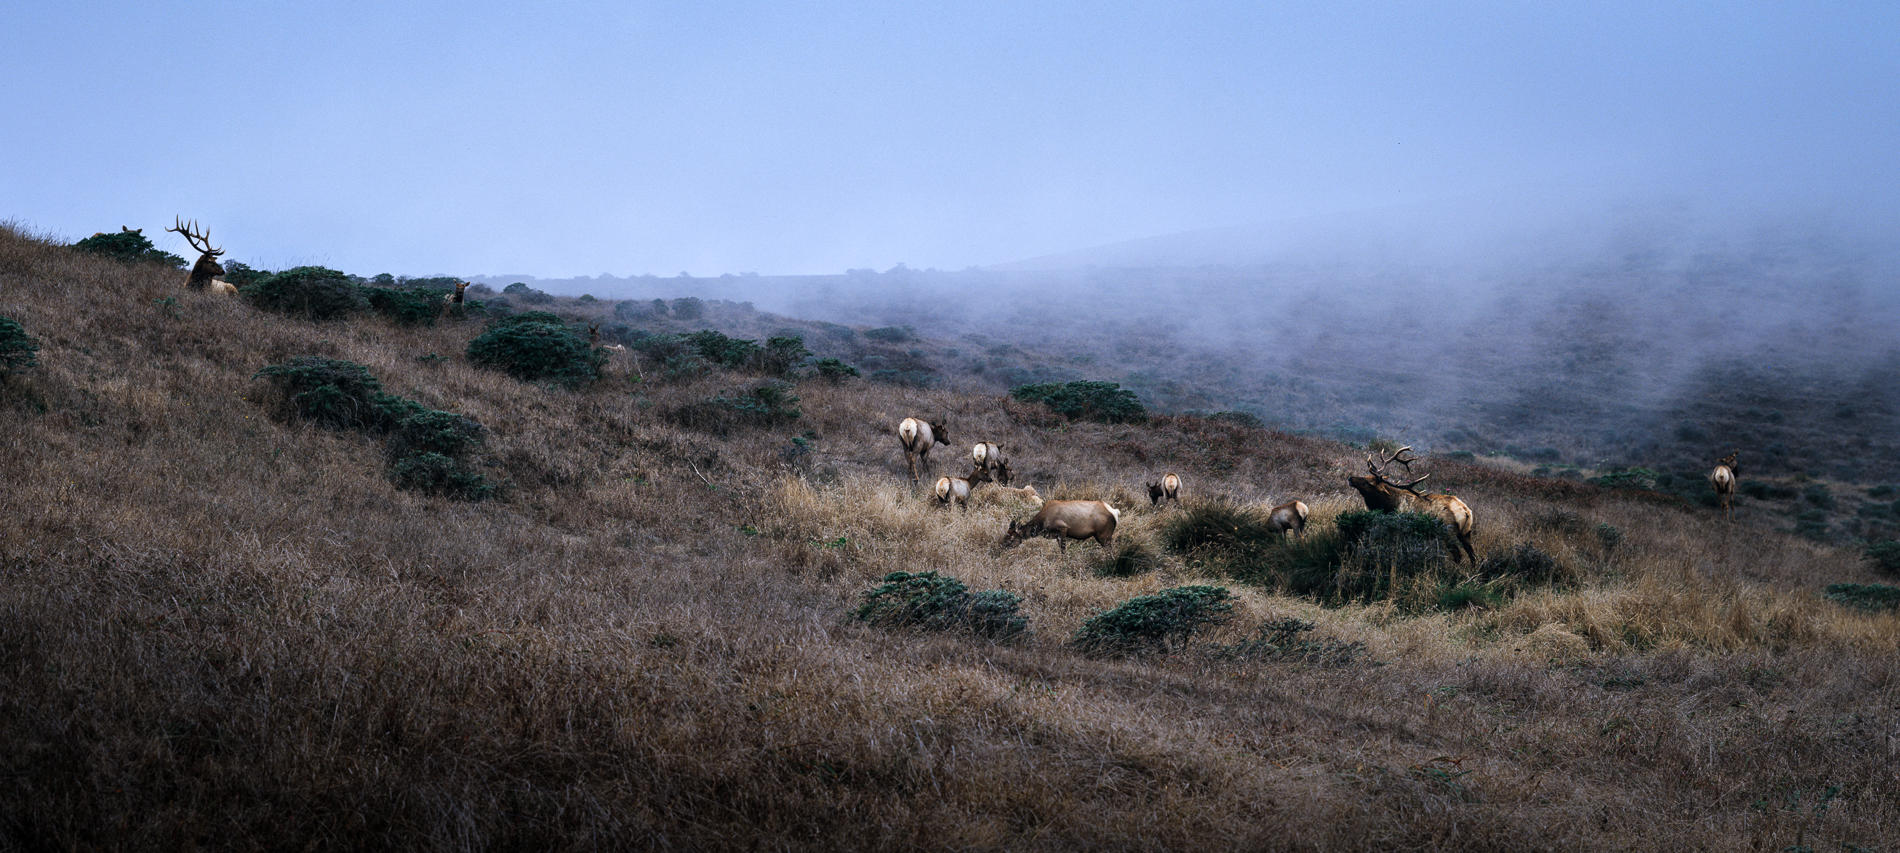 Tule Elk in Rut, Point Reyes National Seashore, California (4x5 view camera) : wildlife : TIMOTHY FLOYD PHOTOGRAPHER, NATURE PHOTOGRAPHY, PHOTO ESSAYS, PHOTOJOURNALISM